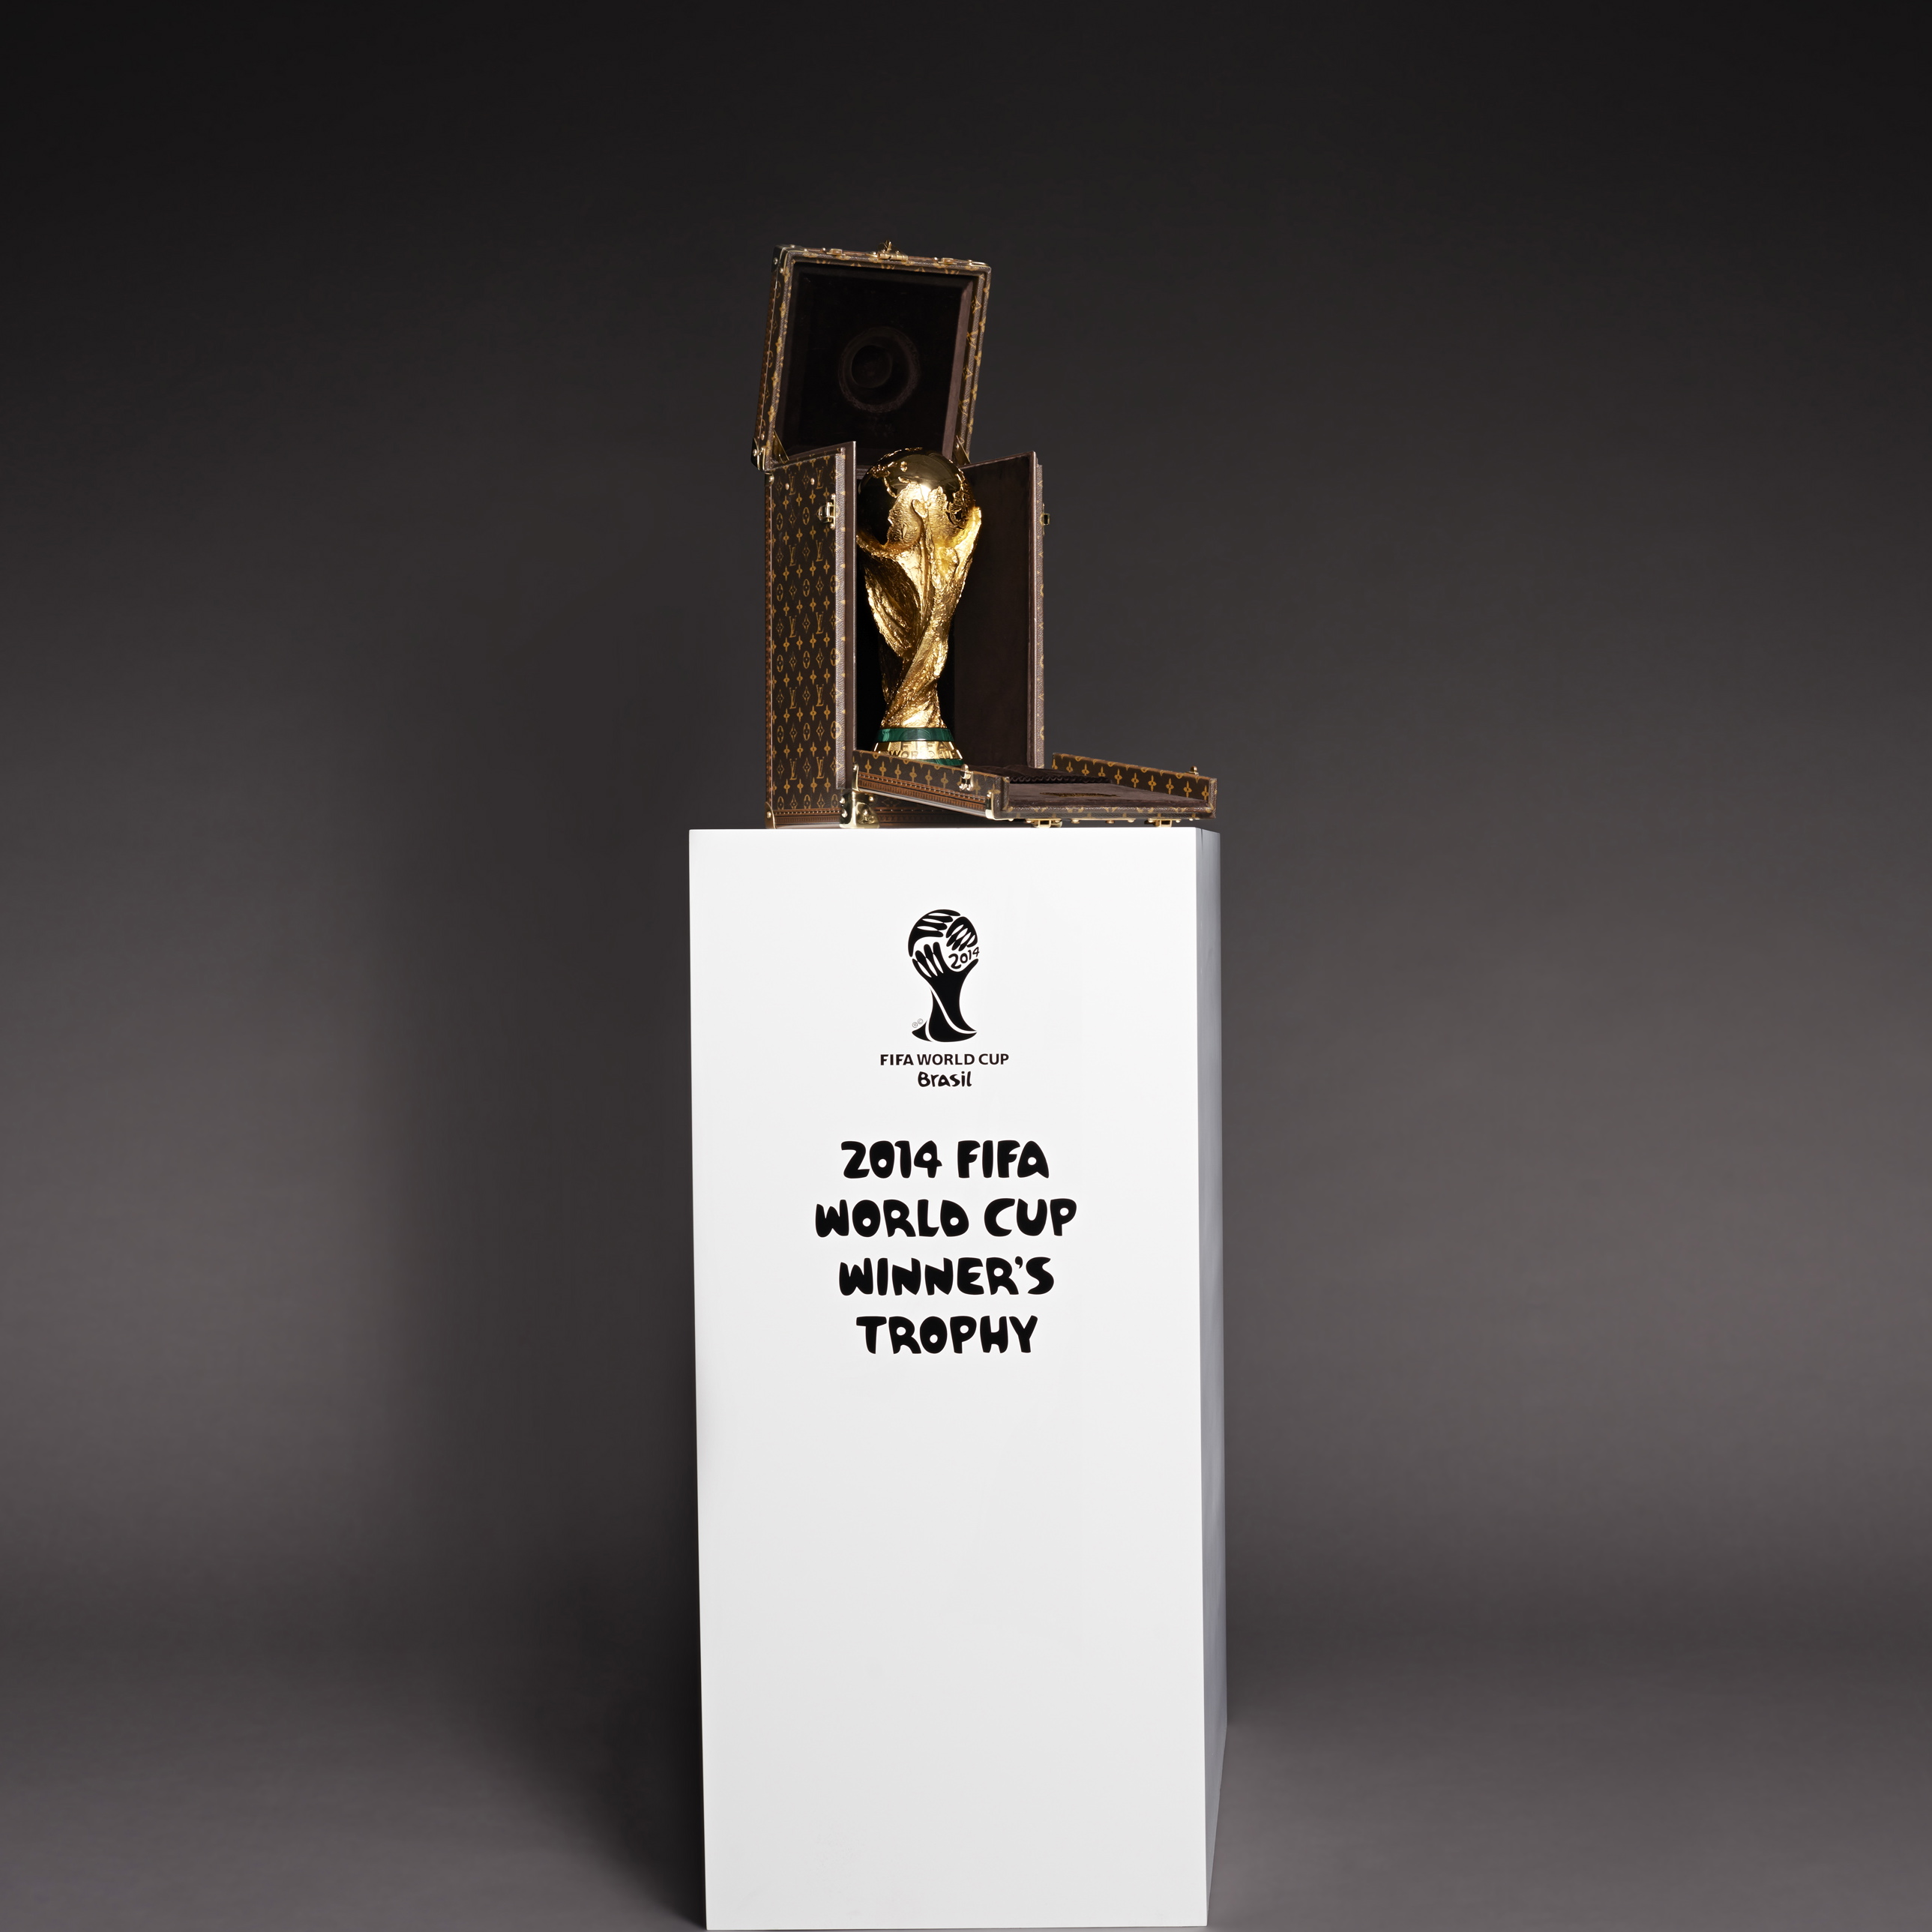 Louis Vuitton Trophy Case and FIFA World Cup, © LV